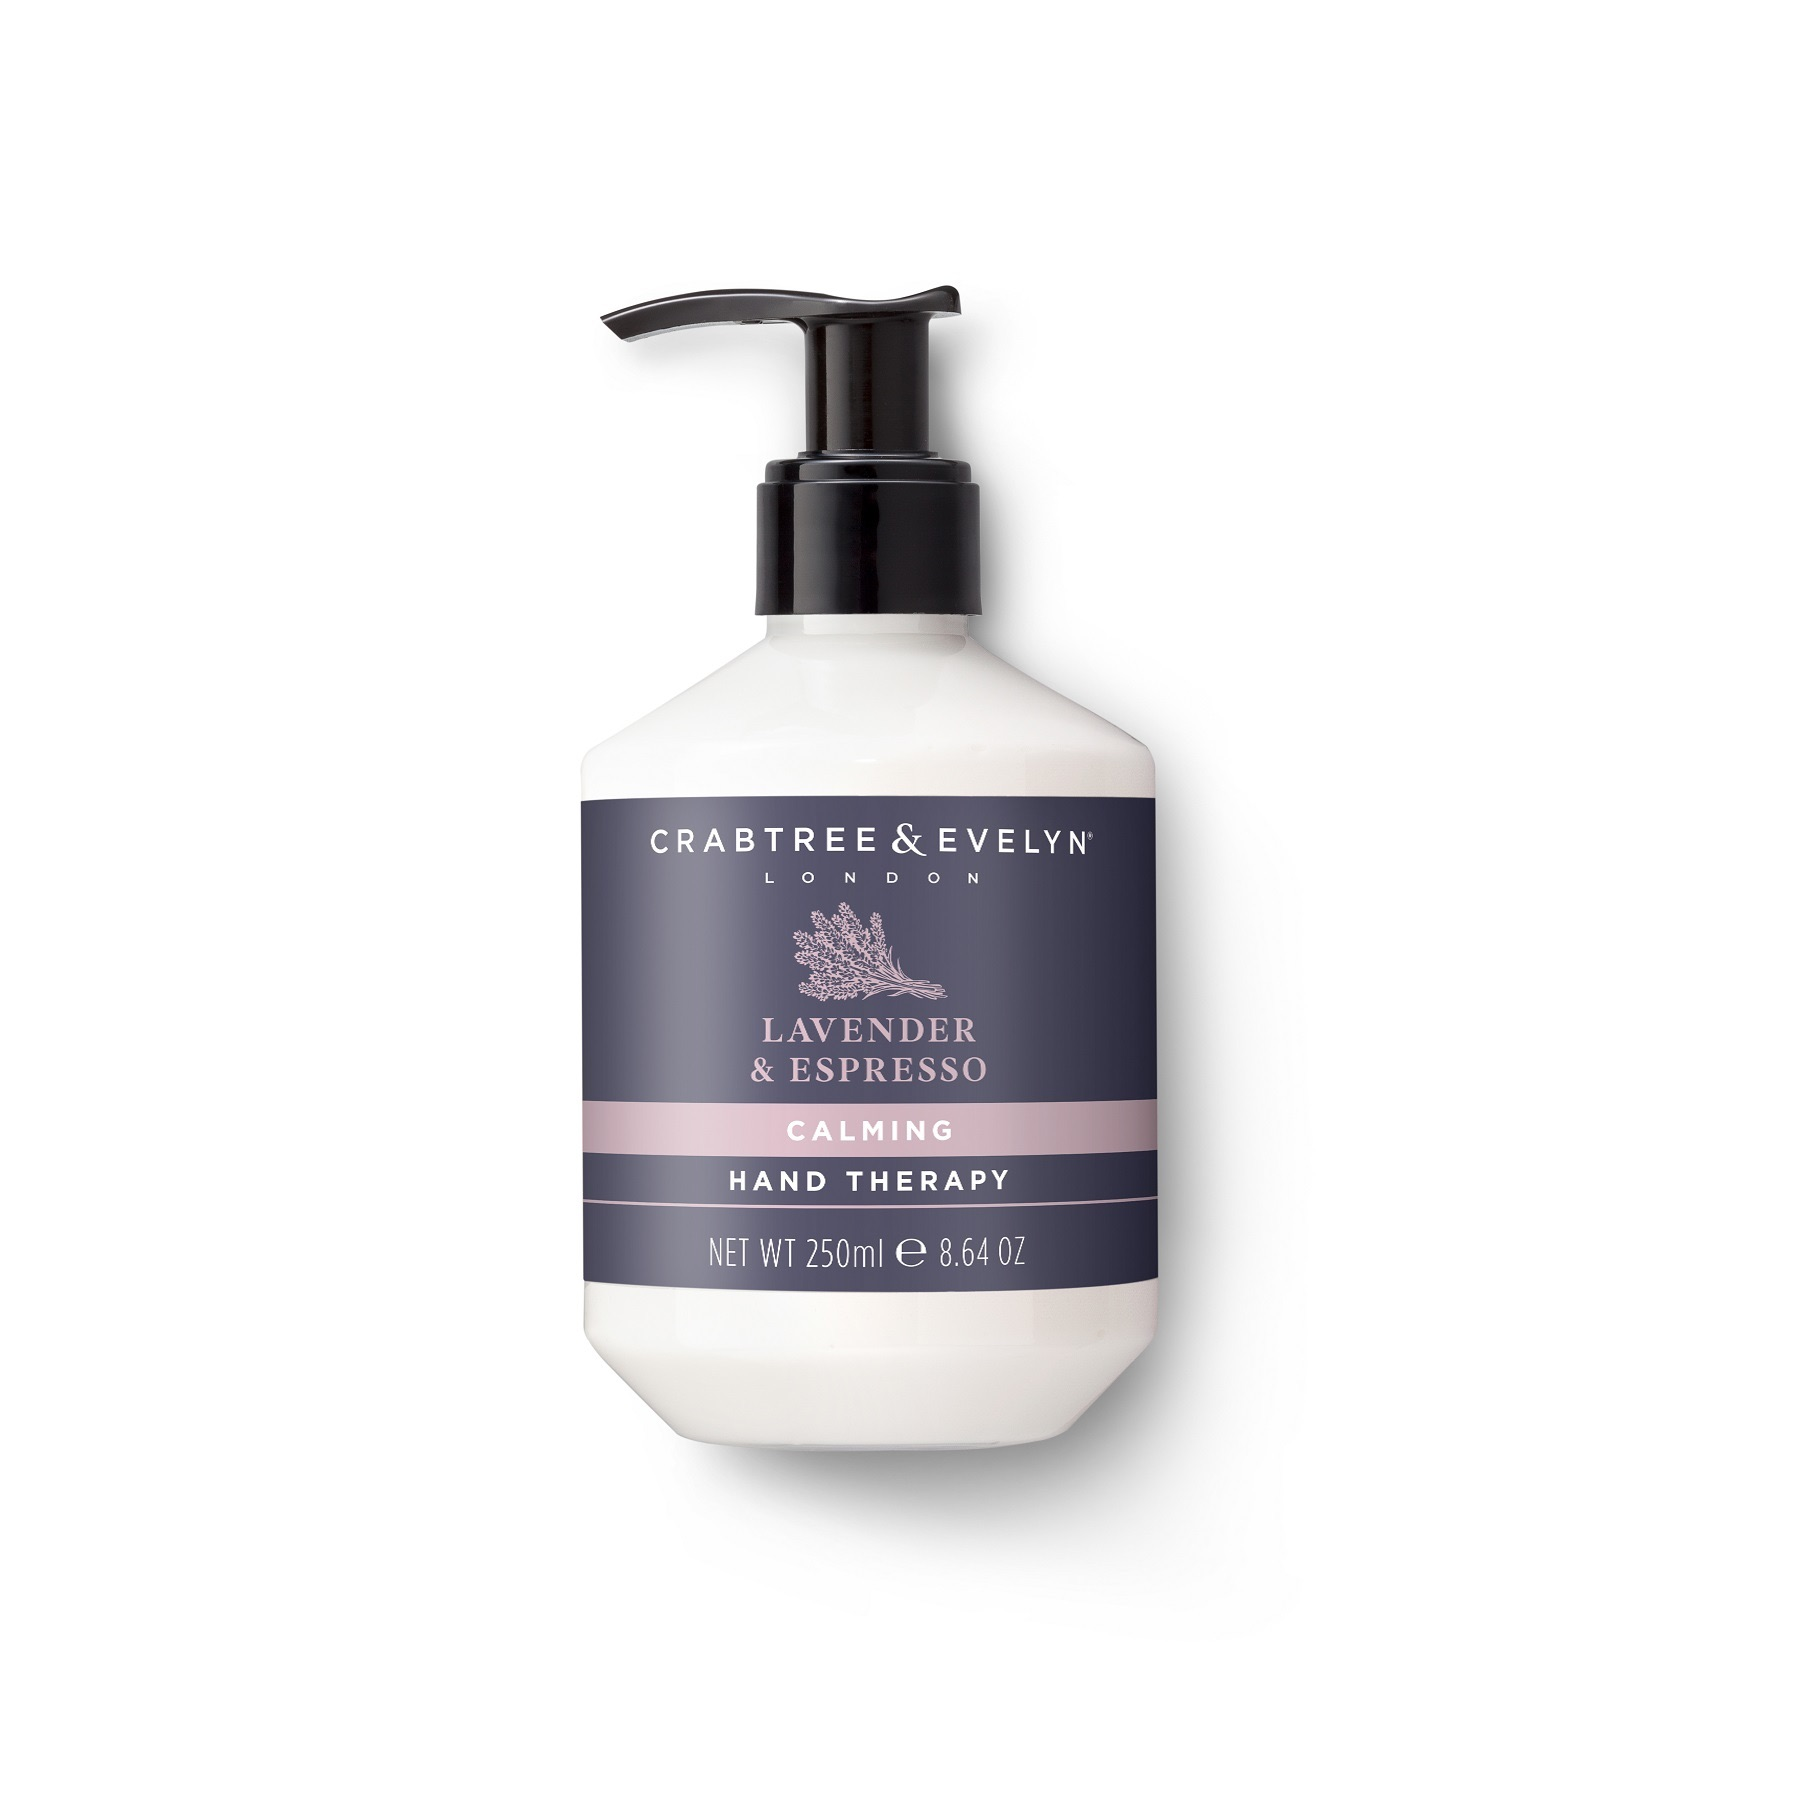 Crabtree & Evelyn Lavender & Espresso Hand Therapy 250g